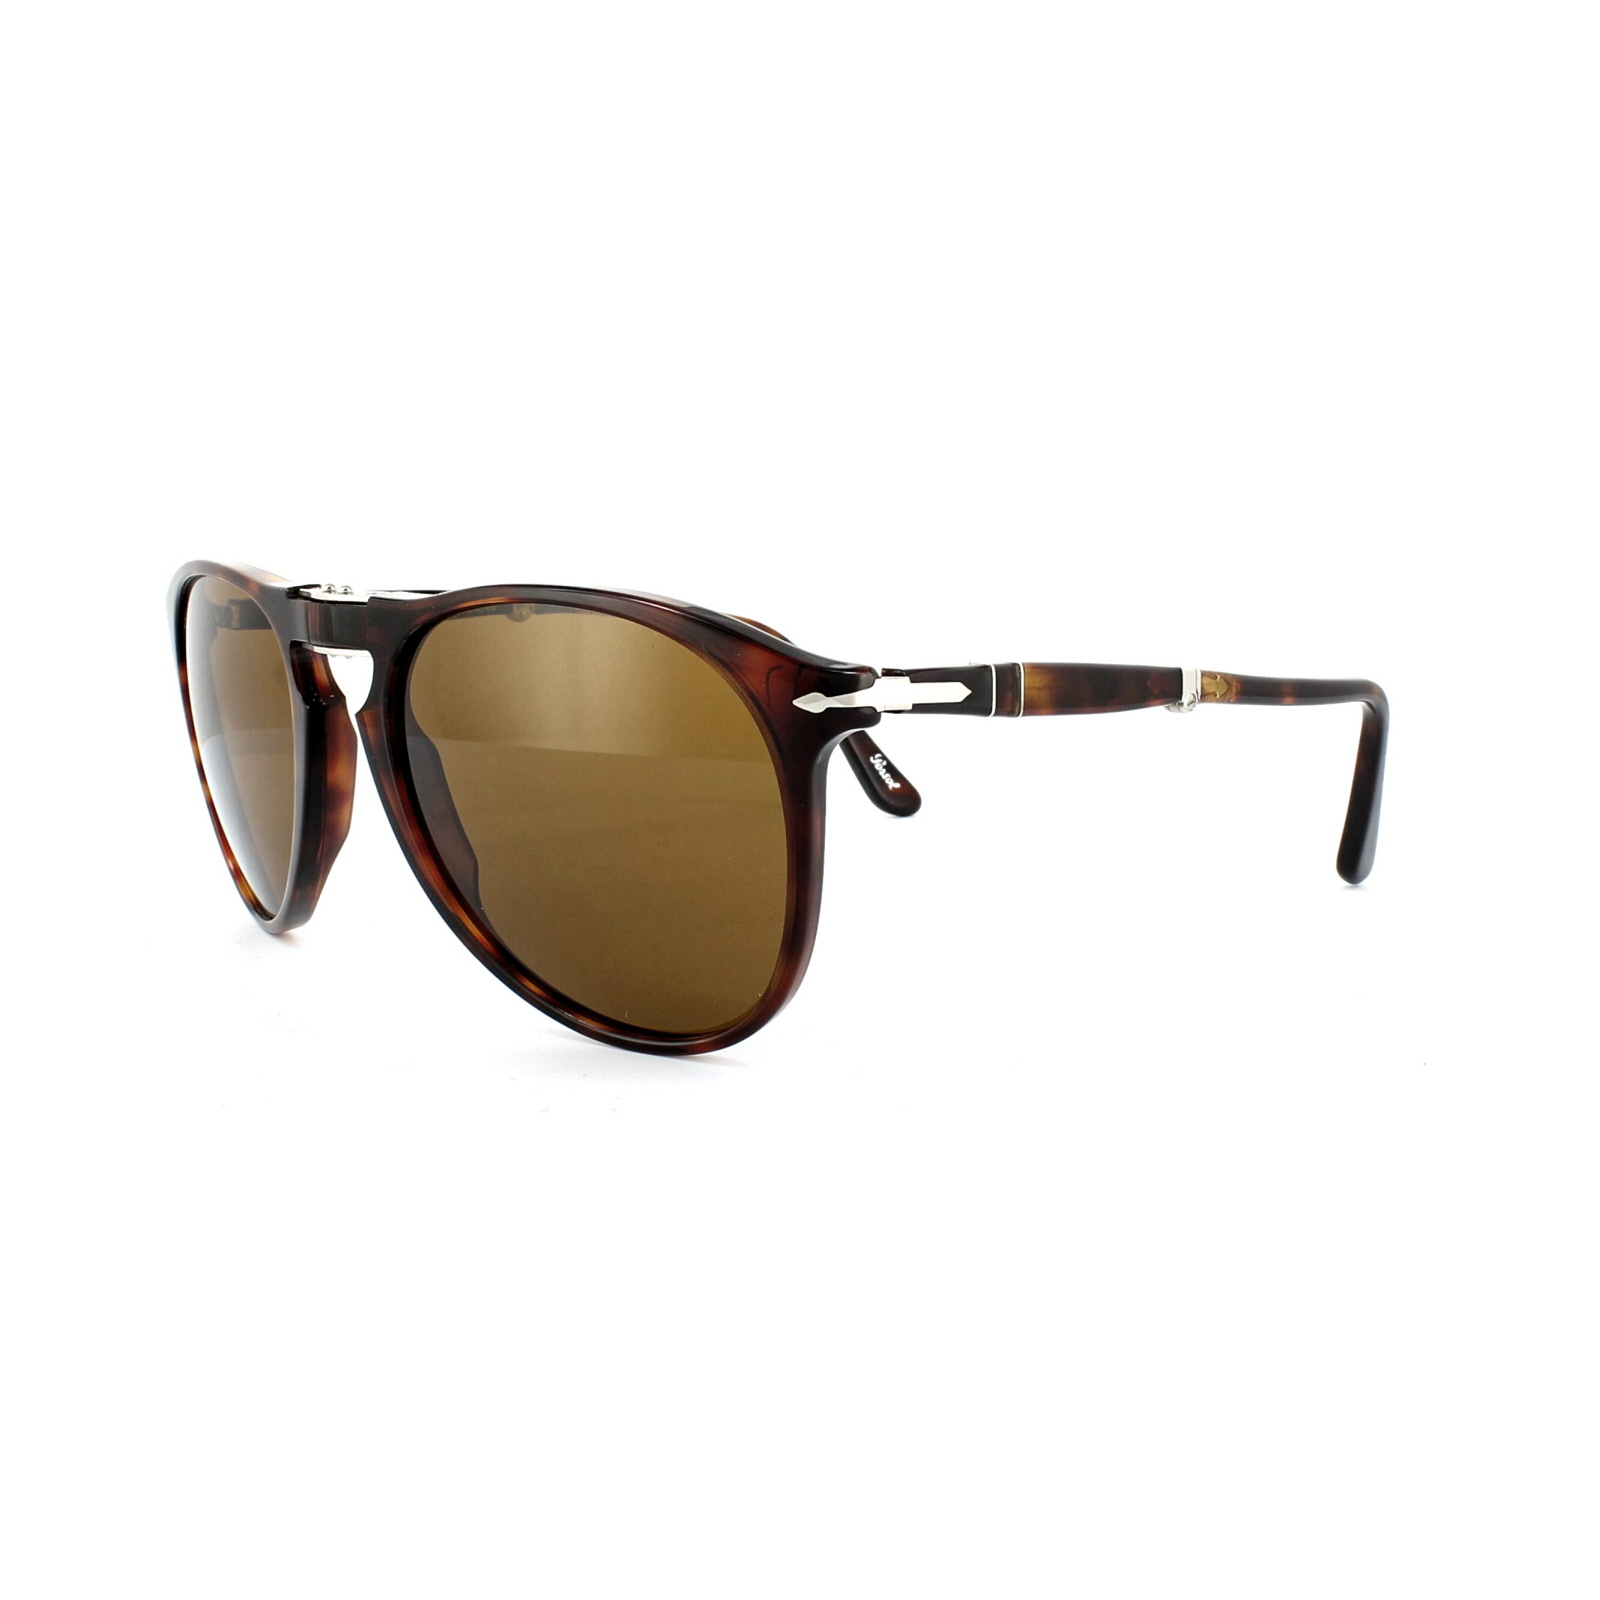 9c5b60aef526f Details about Persol Sunglasses 9714 24 33 Havana Brown